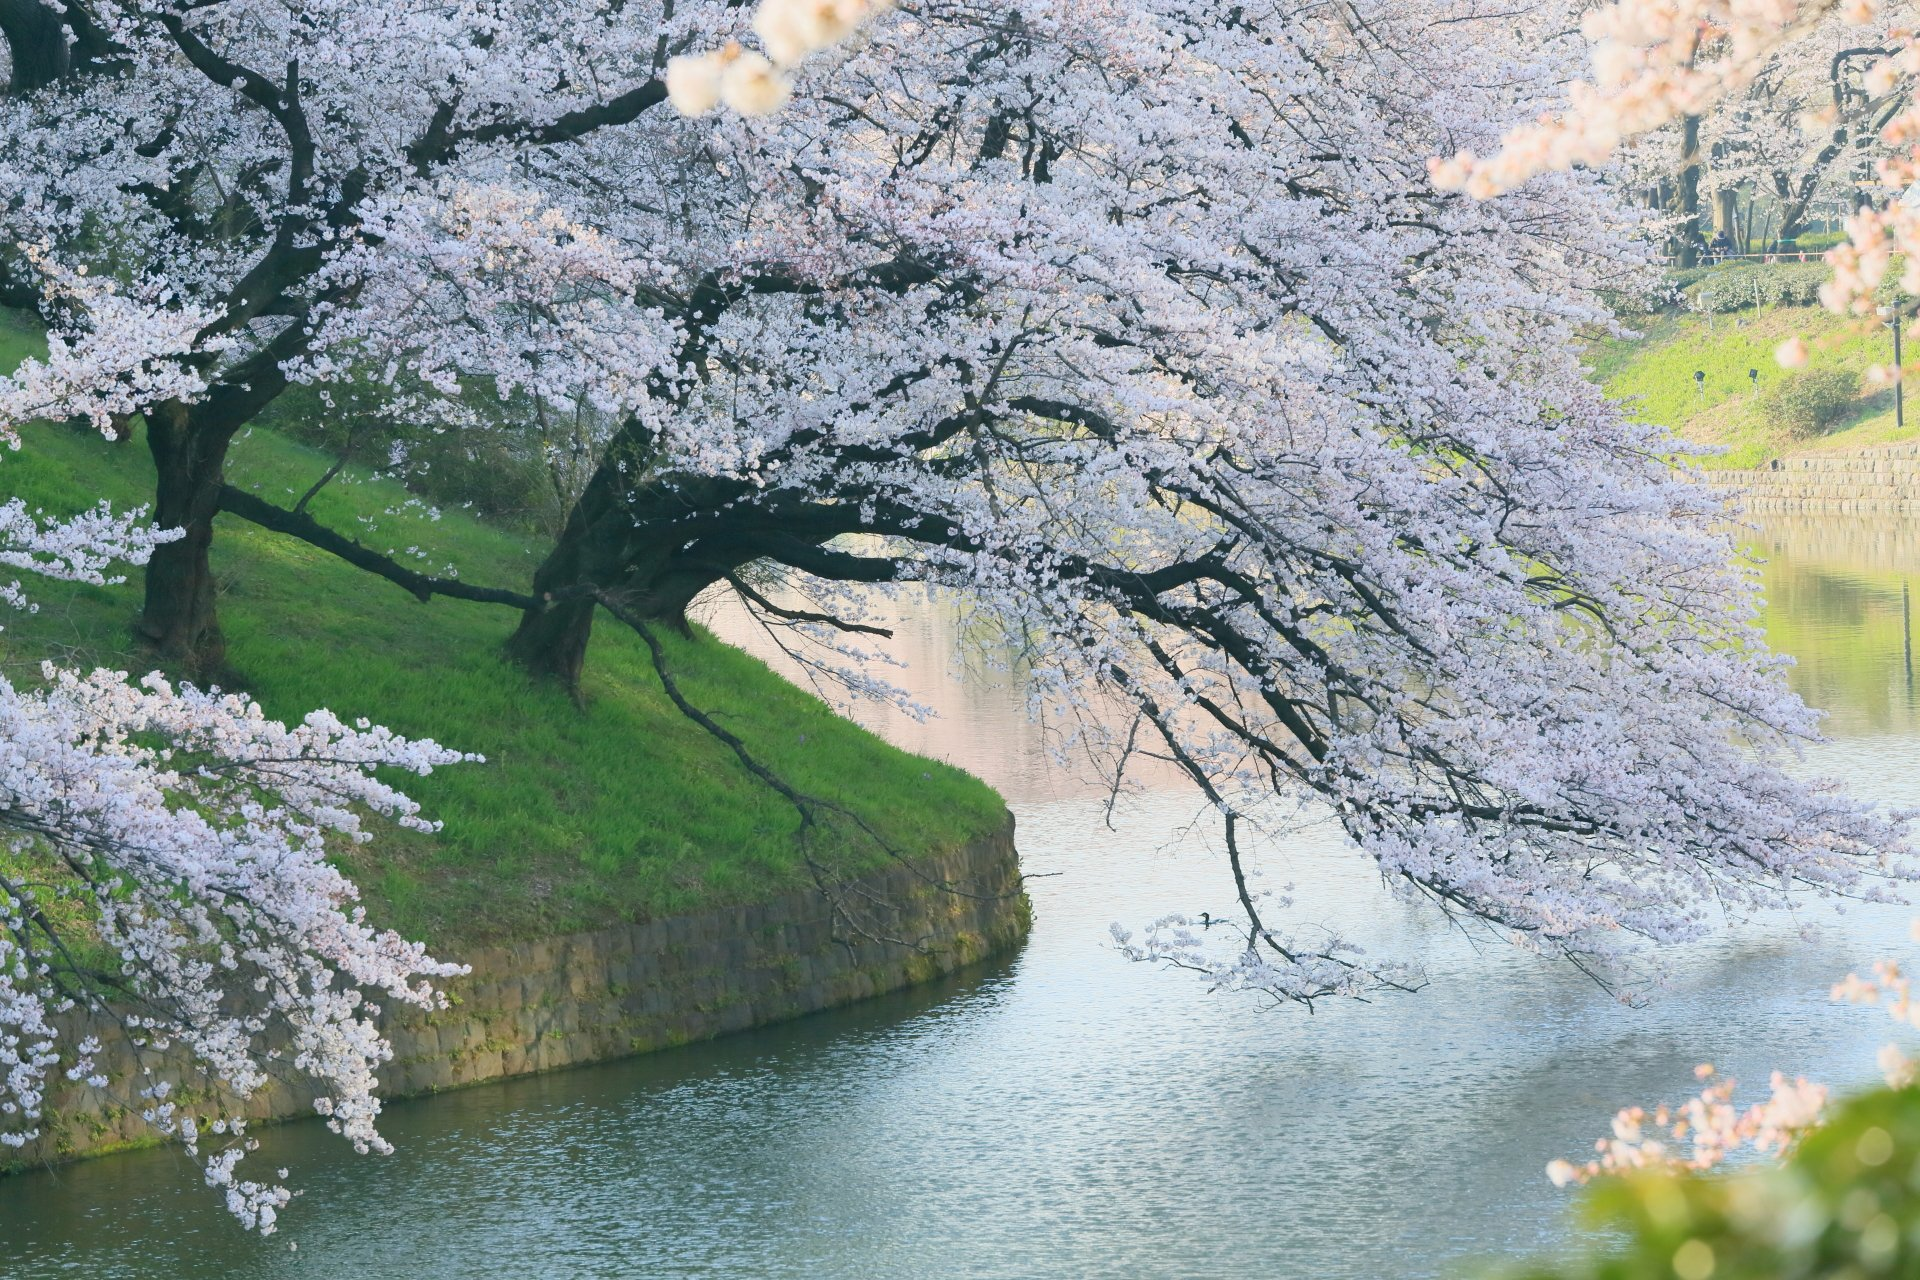 Earth - Spring  Japan Sakura Cherry Tree Cherry Blossom Sakura Blossom Wallpaper